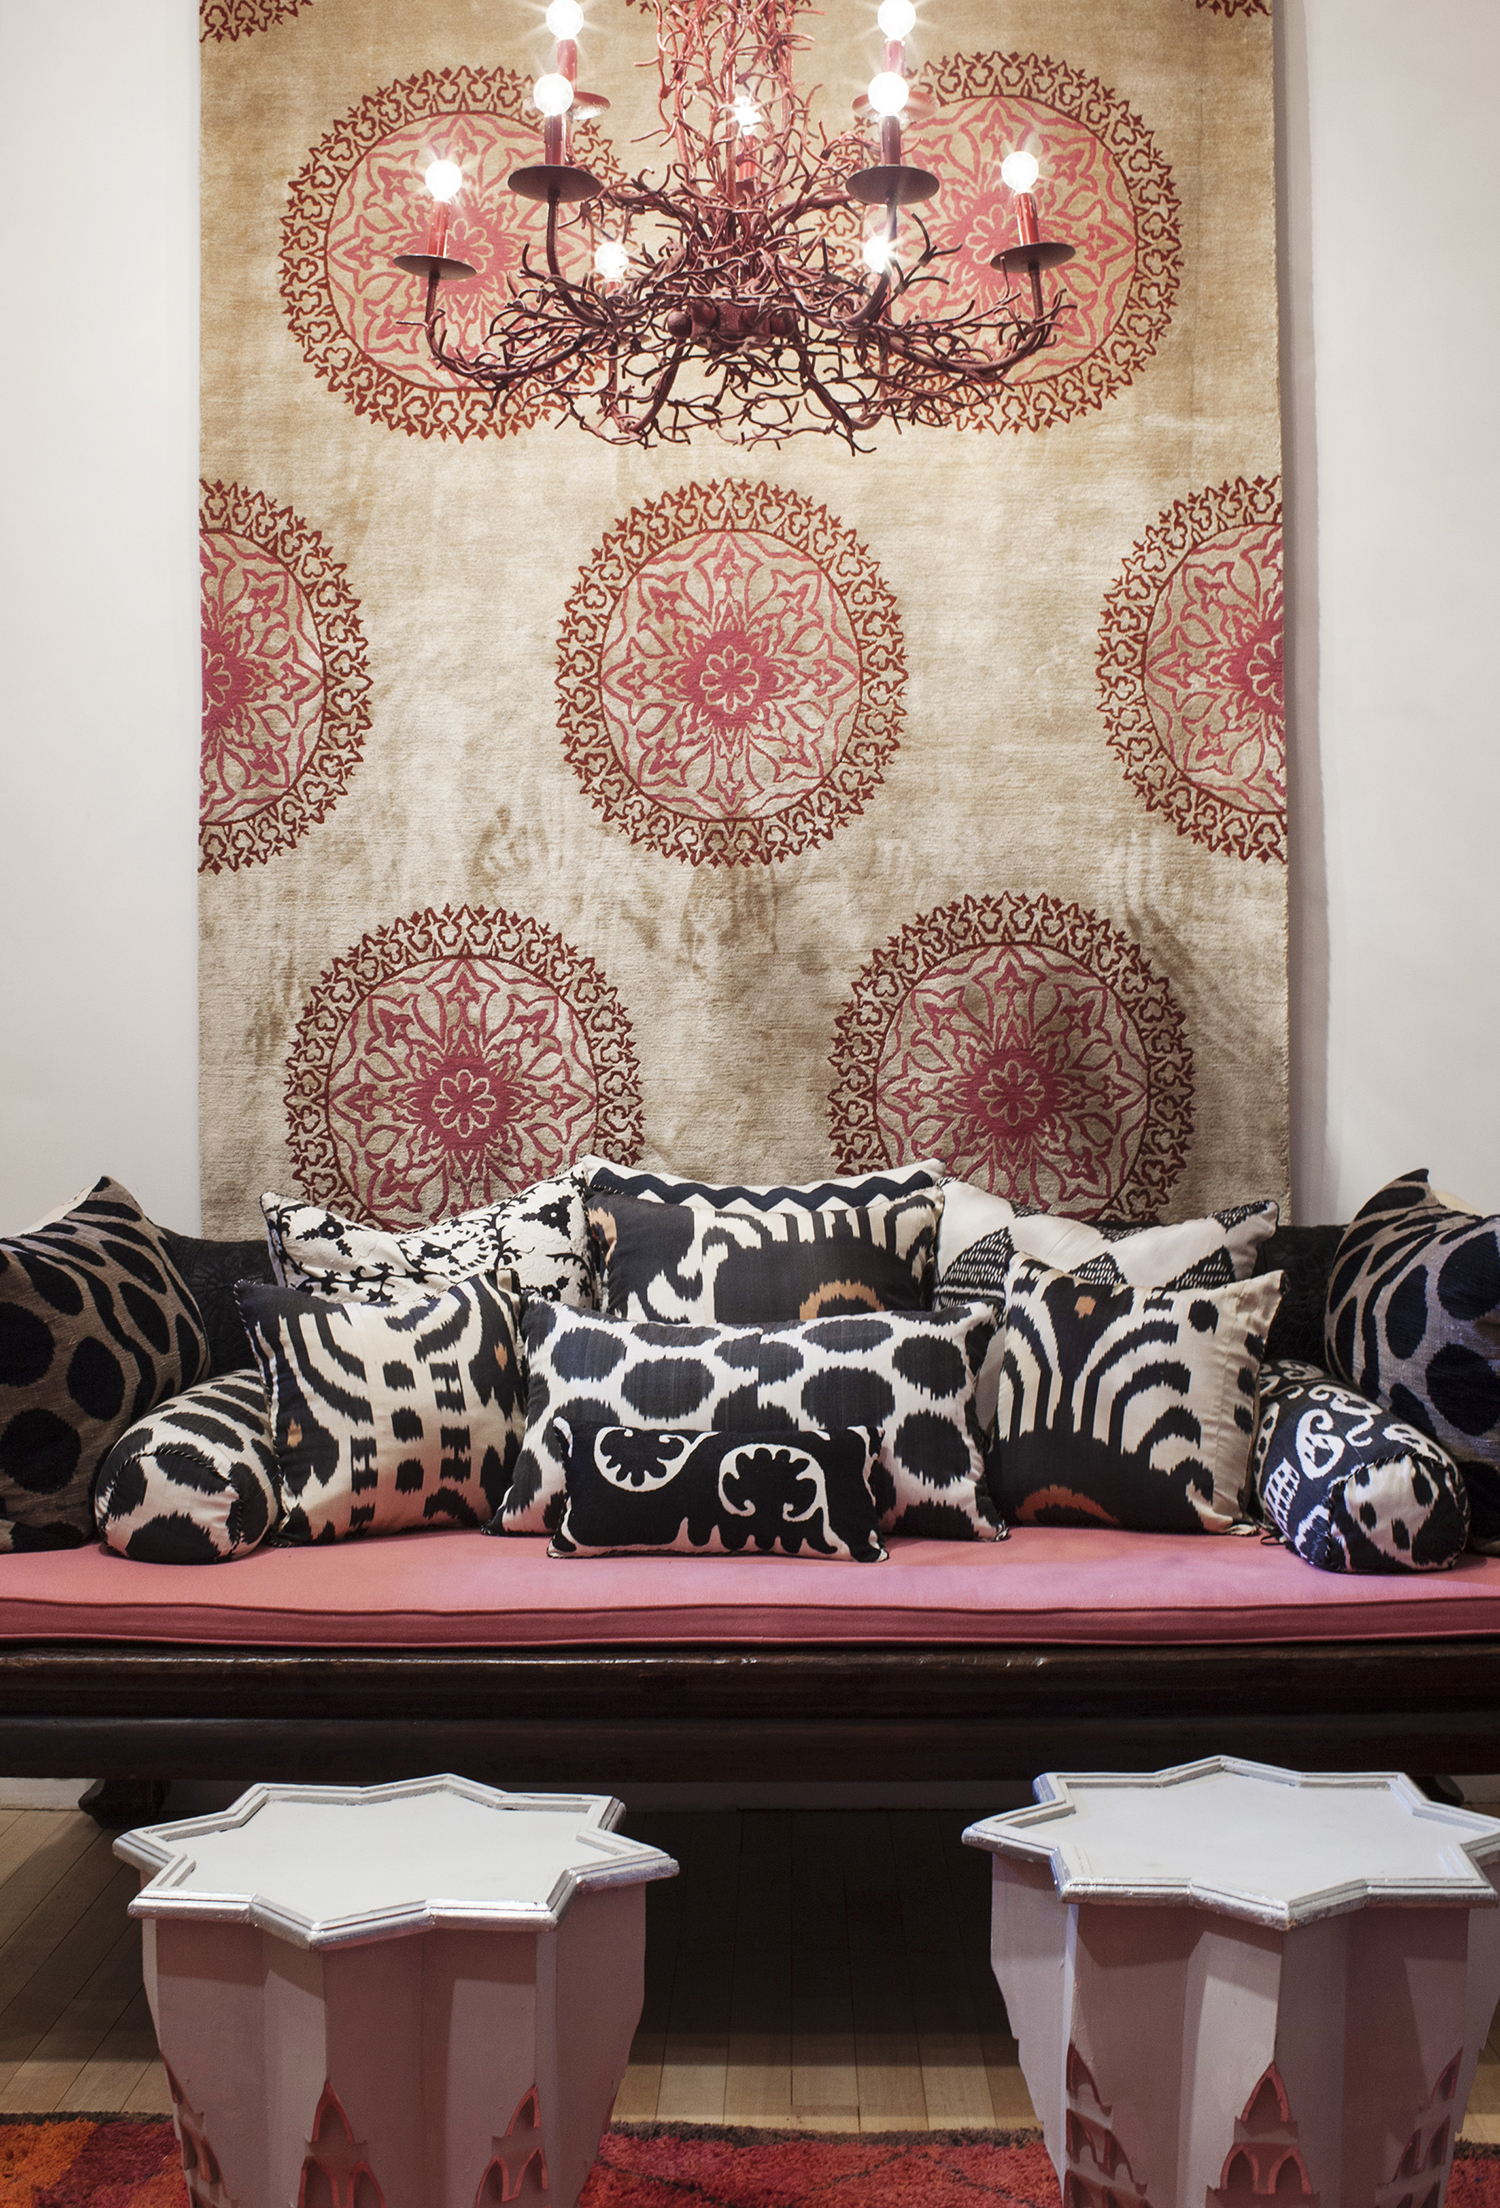 Incredible Madeline Weinrib Inspirations | Exquisite Abc Carpet and Home Careers